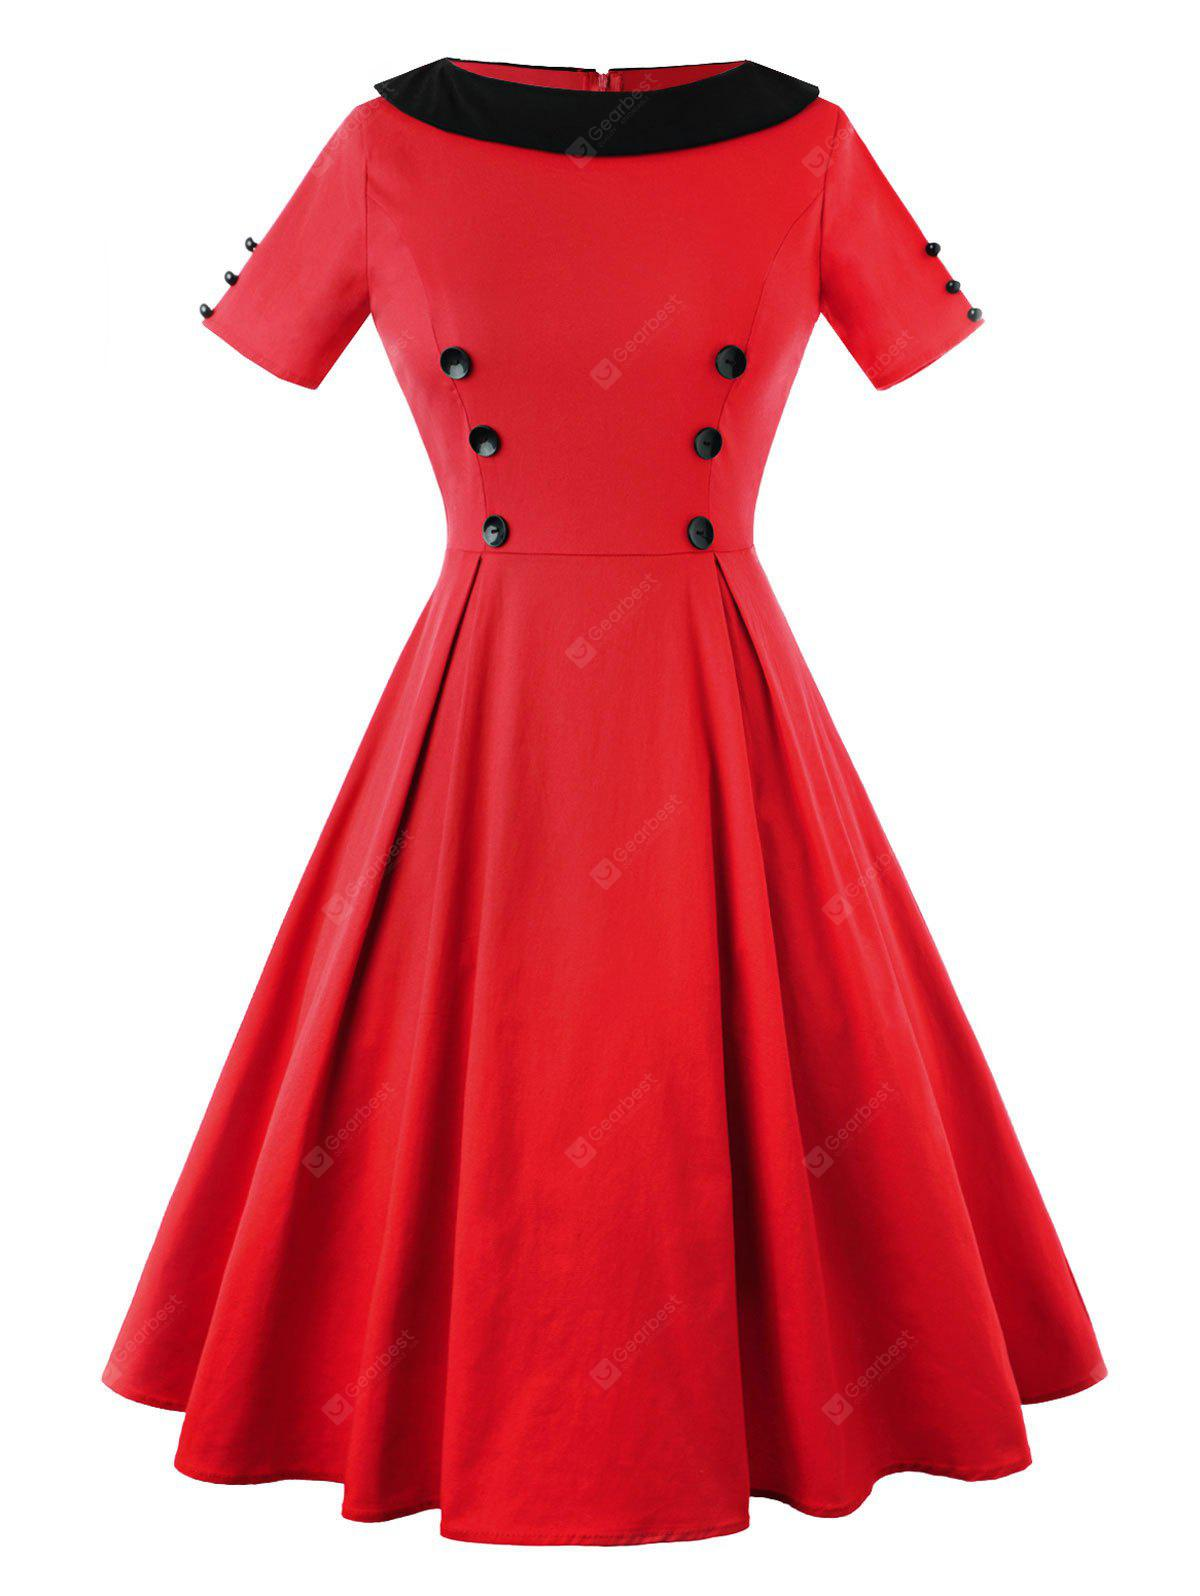 RED 2XL Vintage Two Tone Button Embellished A Line Dress